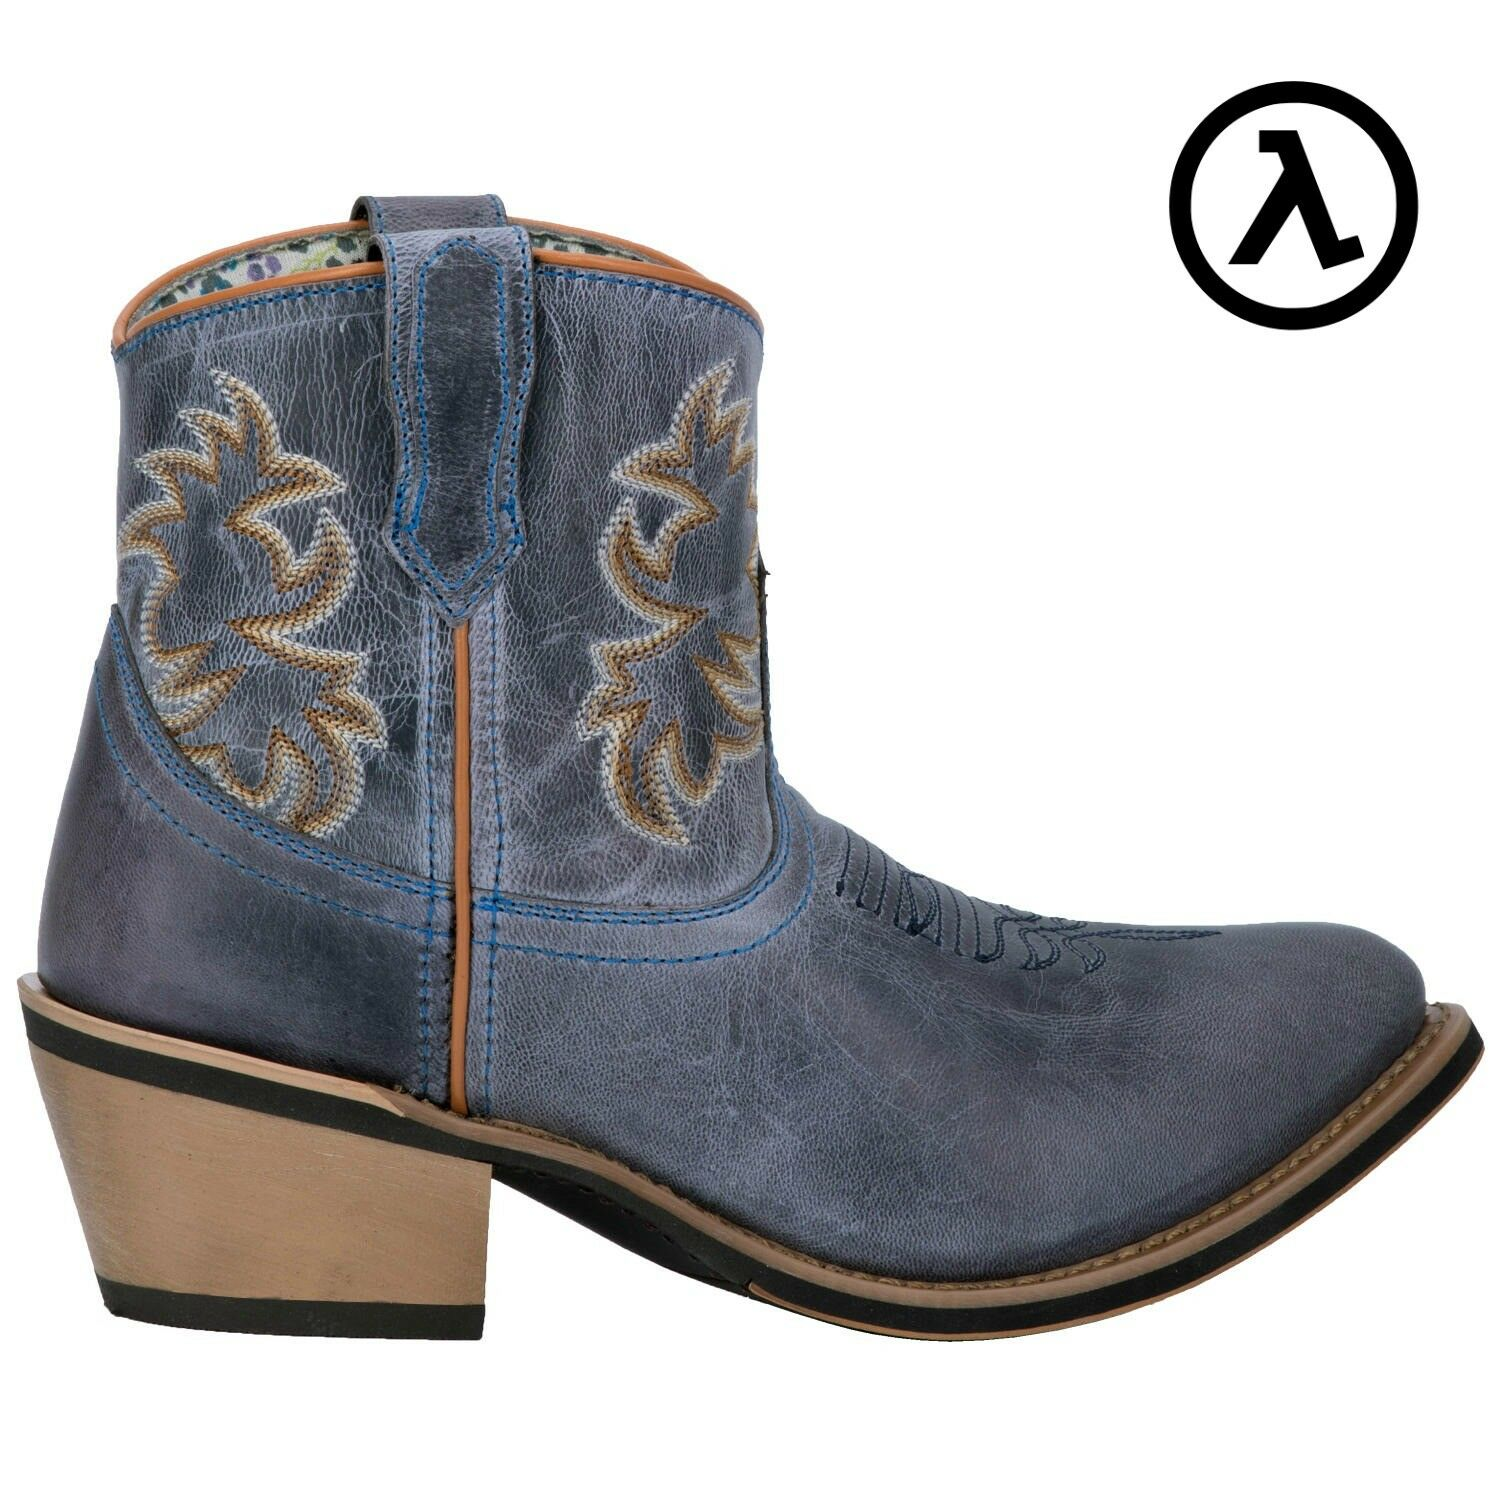 LAREDO NAVY SAPPHRYE 6  WOMEN'S SHORTIE WESTERN BOOTS 51026  ALL SIZES - NEW